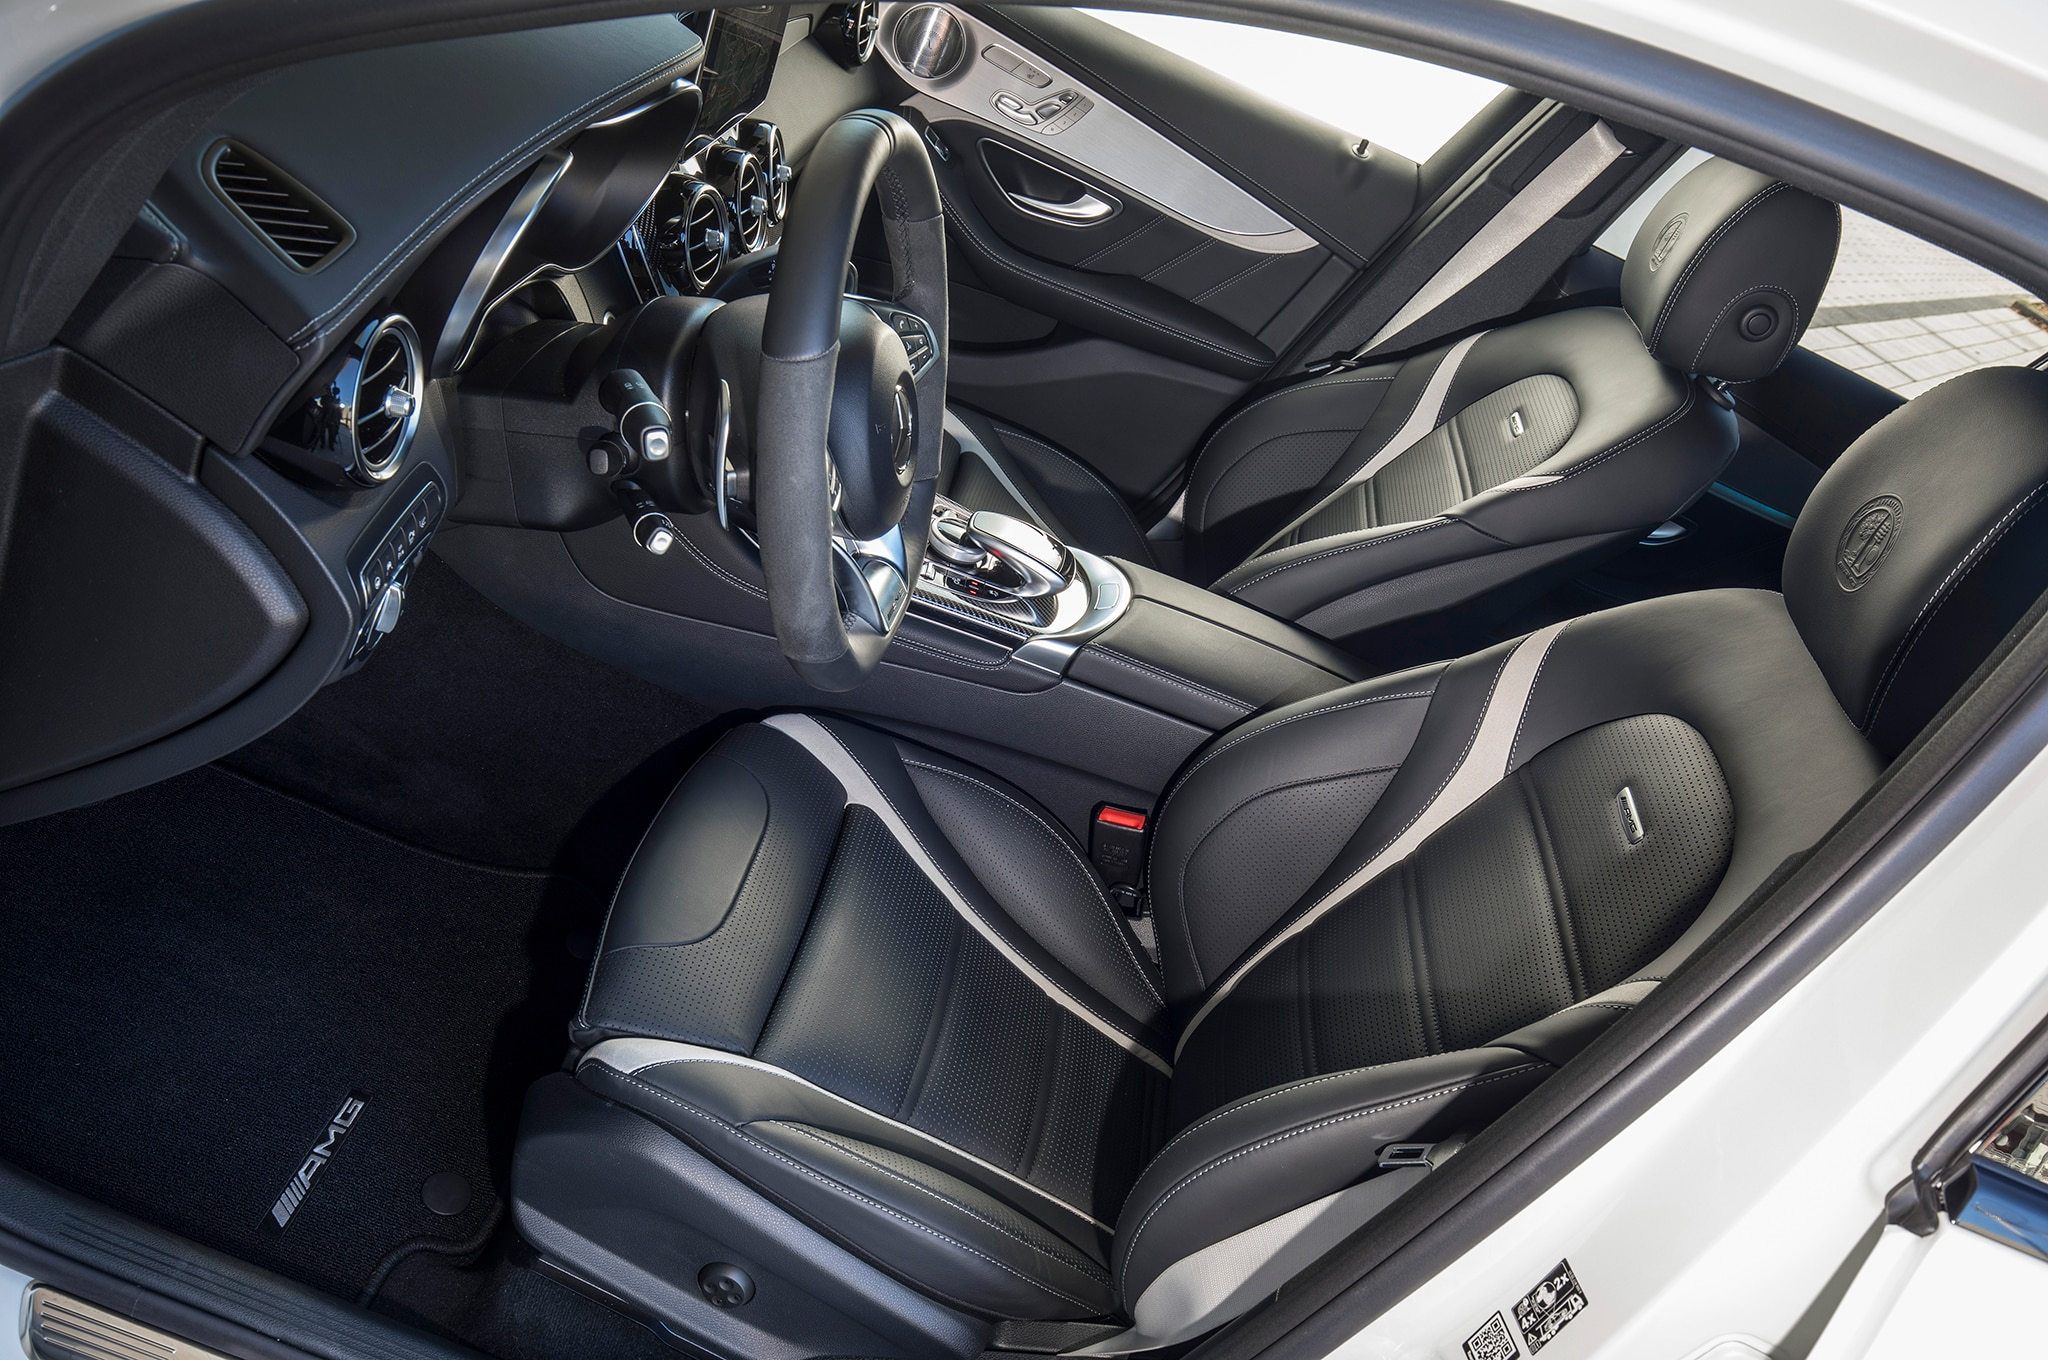 https://st.automobilemag.com/uploads/sites/11/2017/11/2018-Mercedes-AMG-GLC63-S-Coupe-front-interior-drivers-side-01.jpg